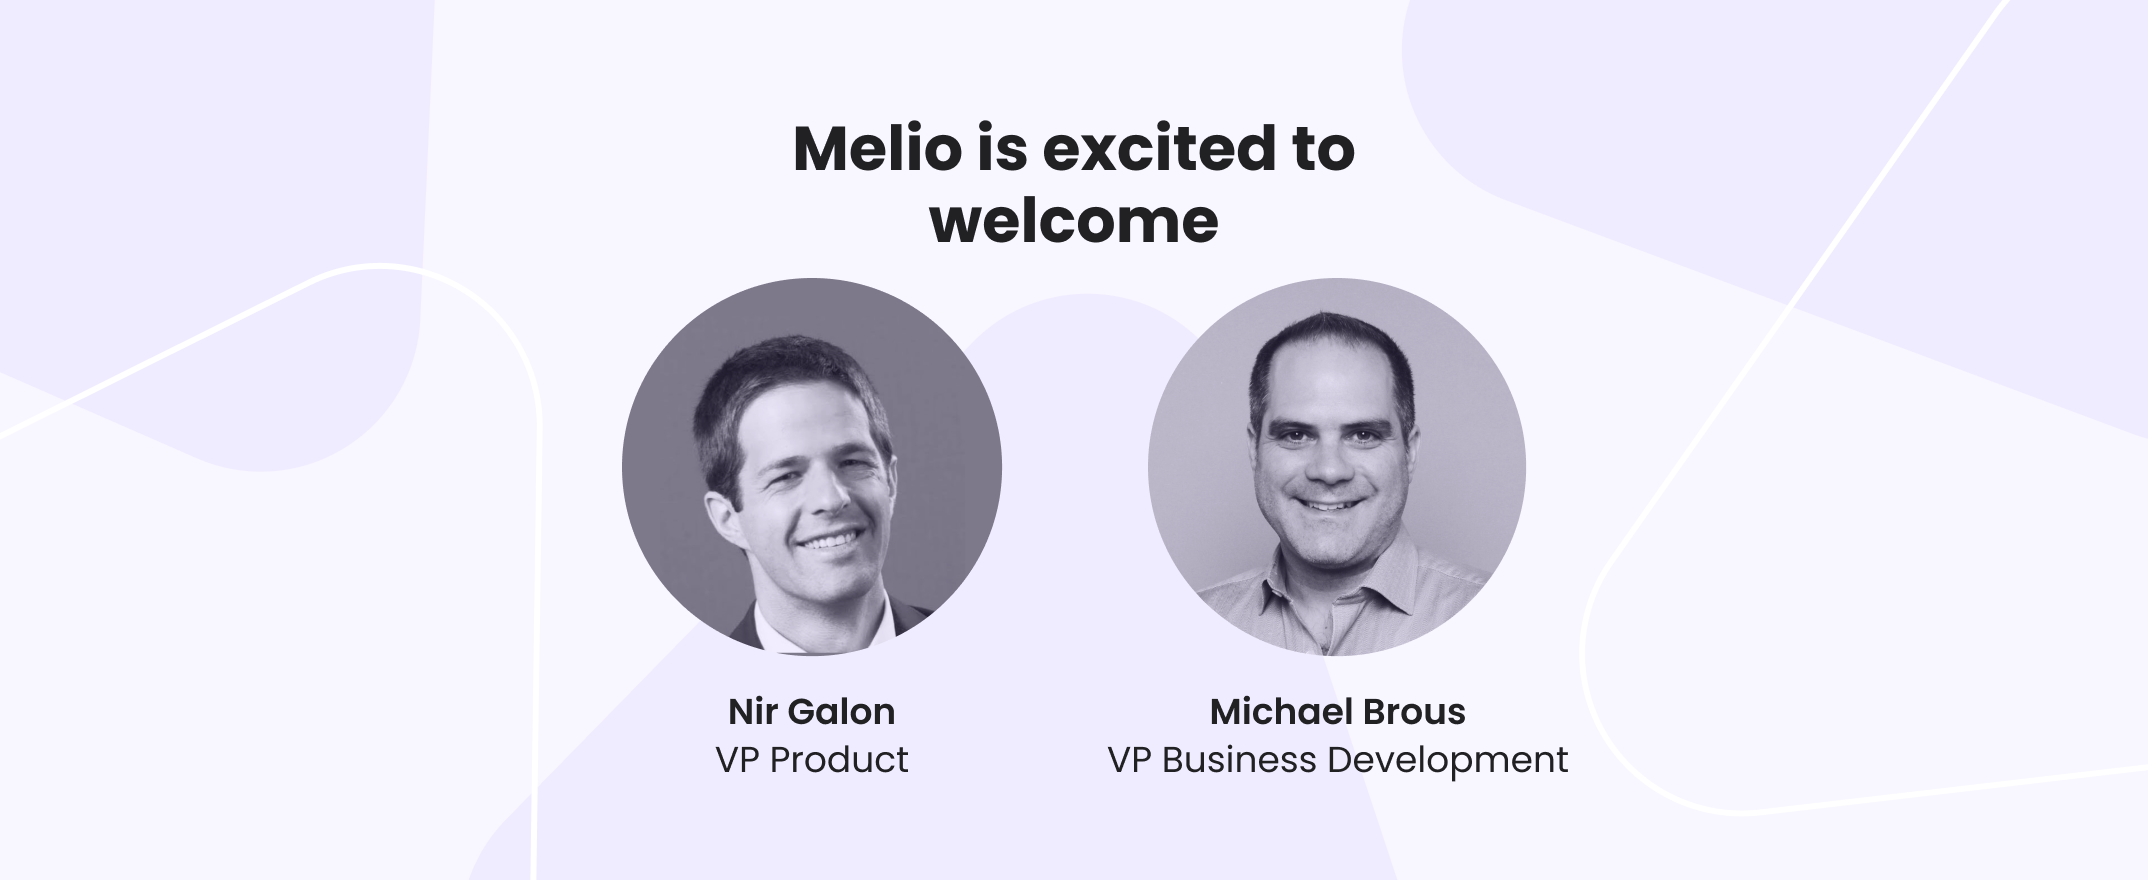 Melio welcomes two new VPs: Michael Brous and Nir Galon